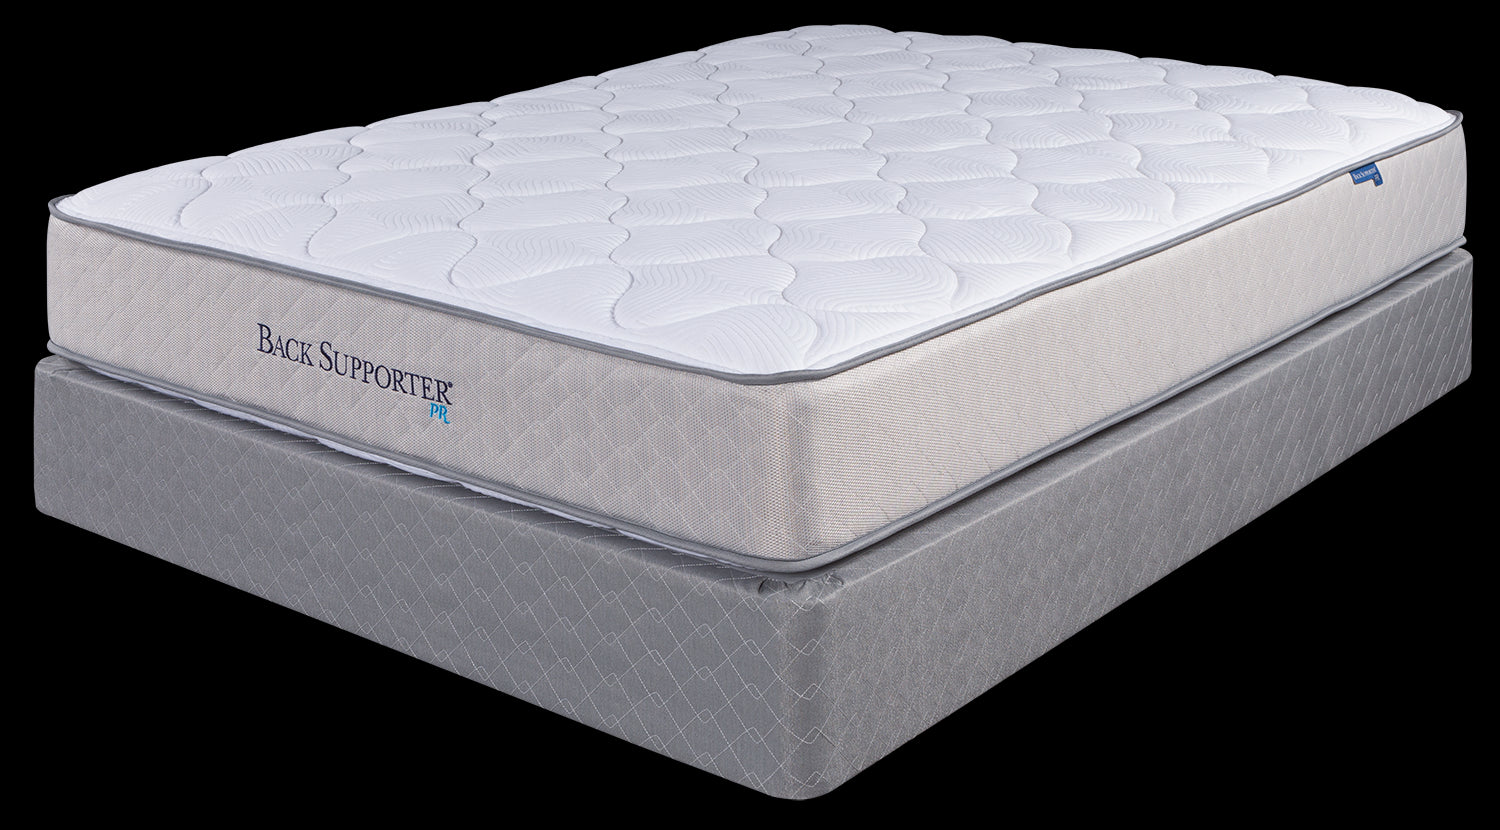 Spring Air King Dual Sided Back Support Mattress Set